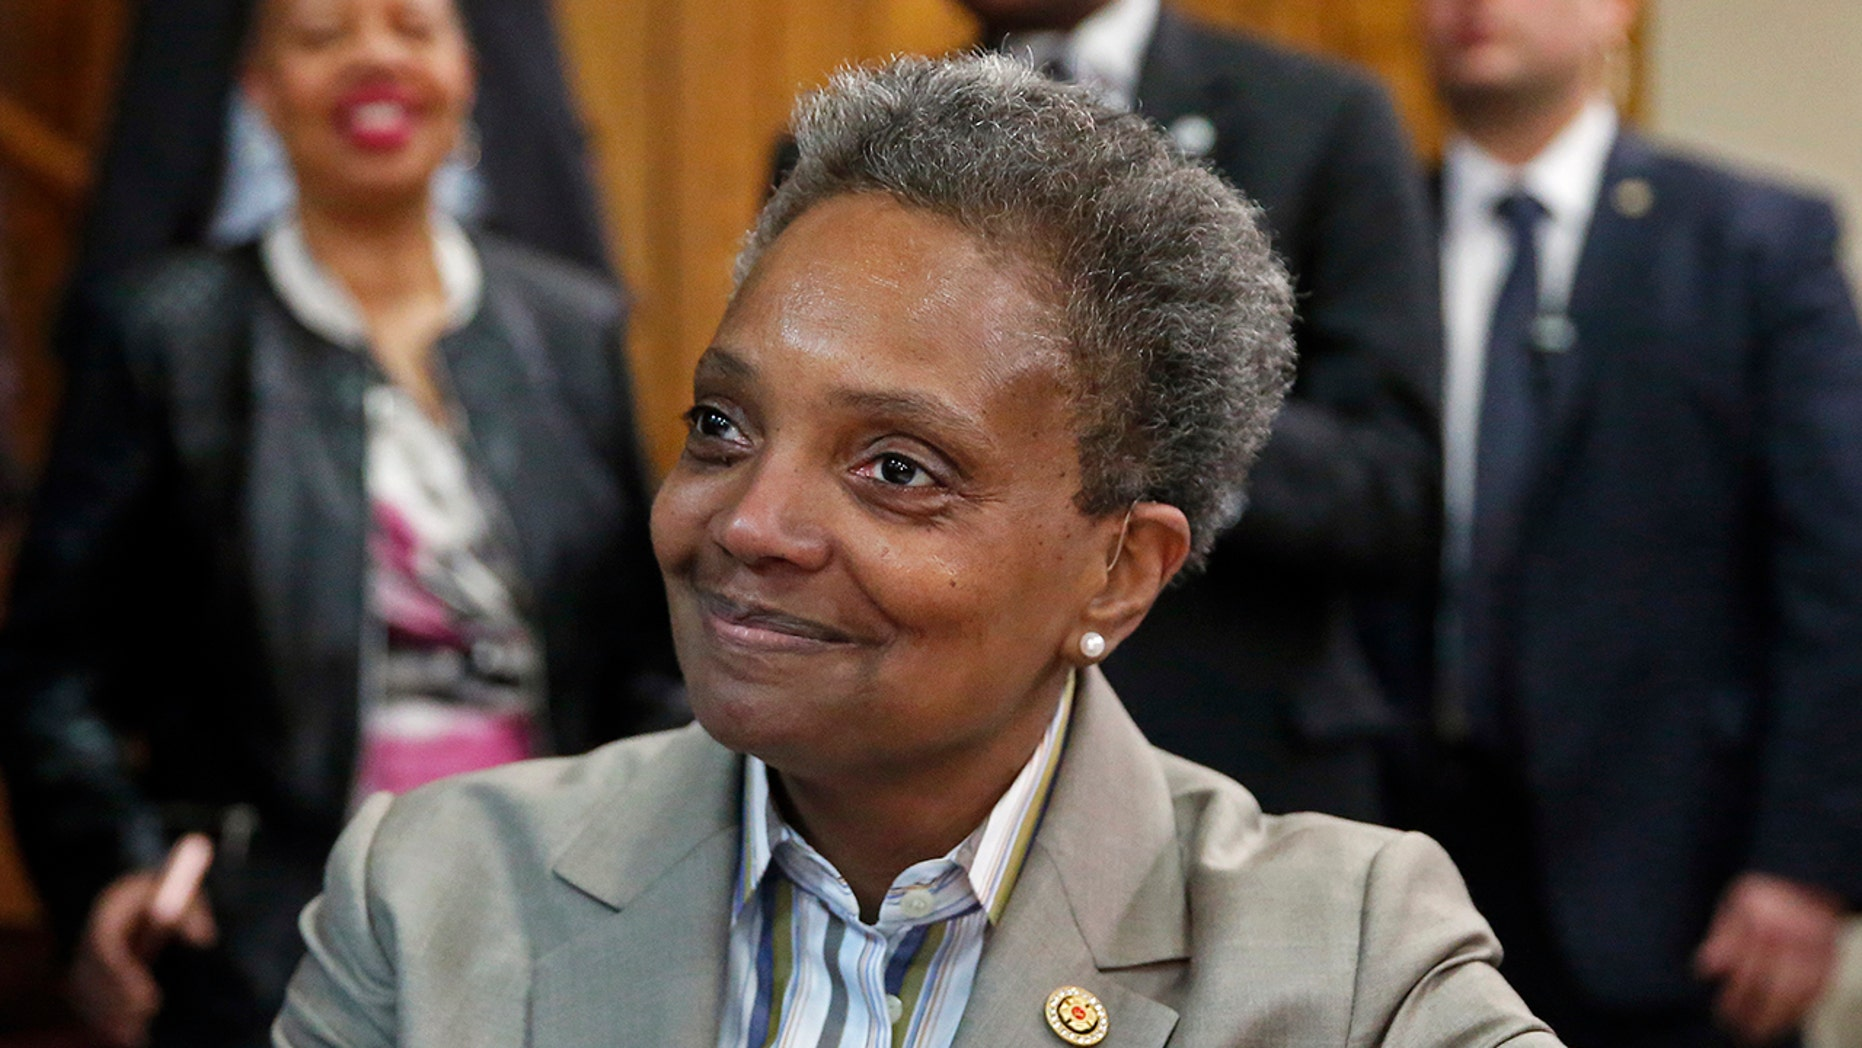 Chicago Mayor-elect Lightfoot says she'd welcome immigrants if Trump